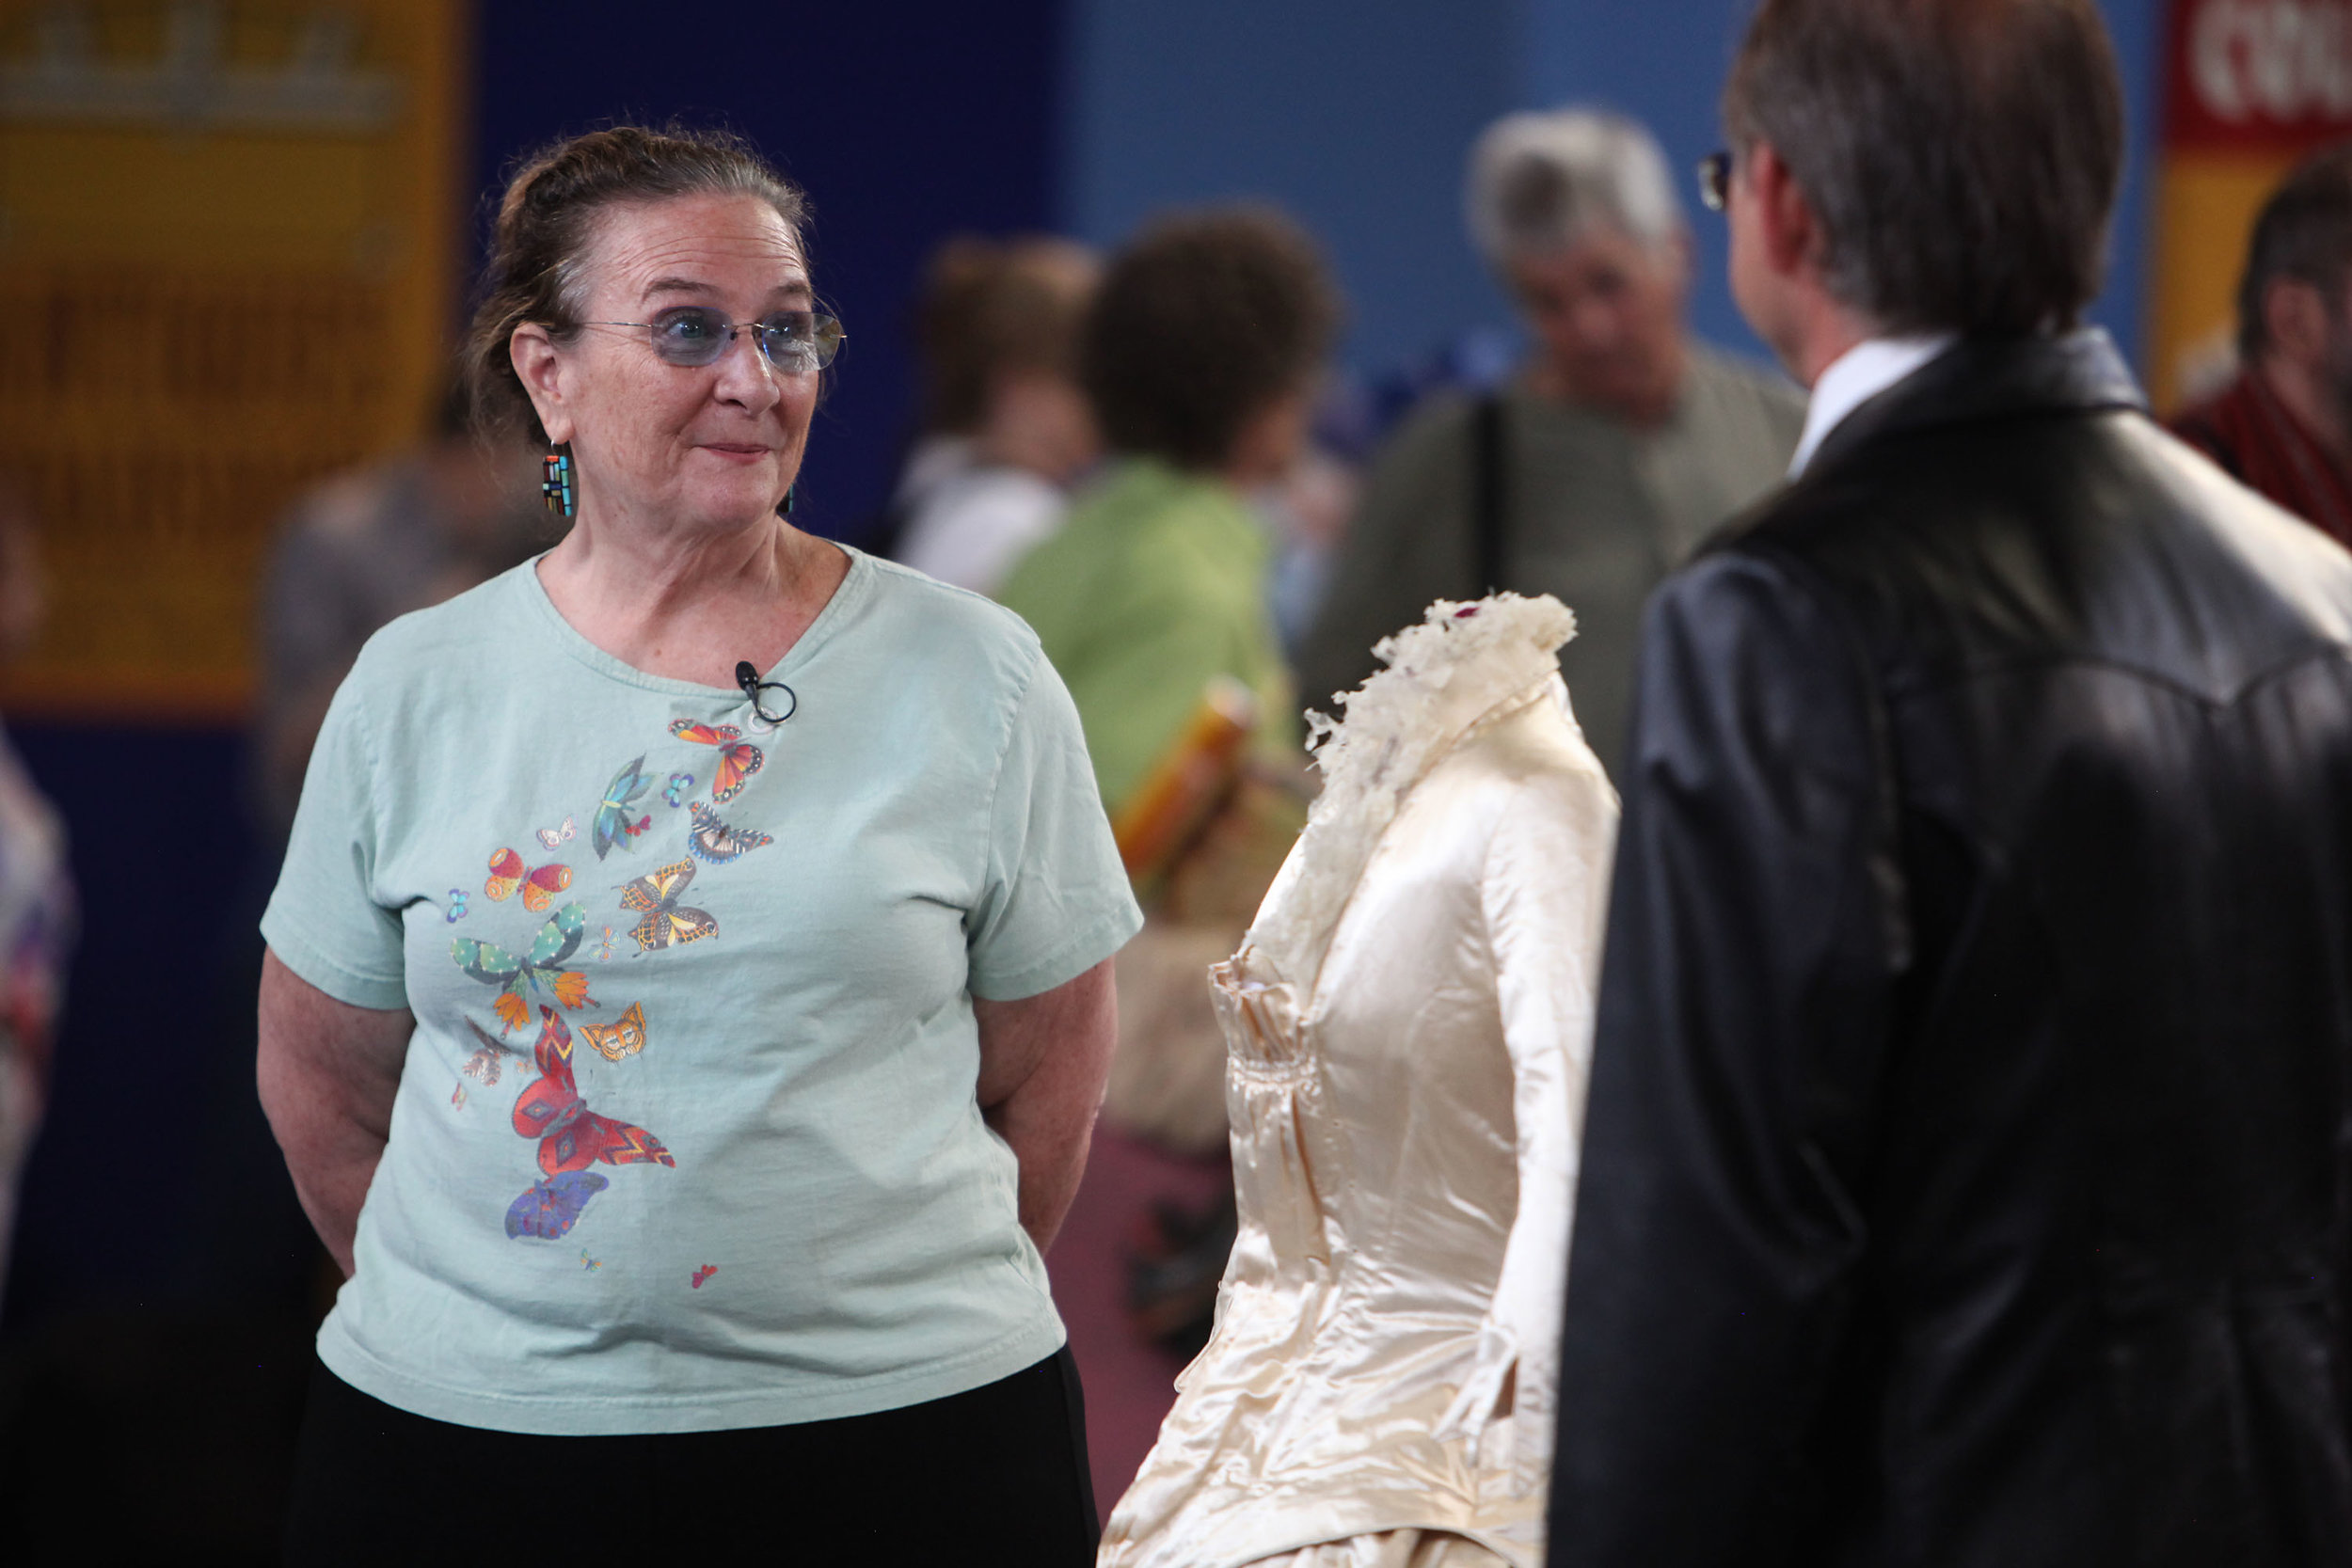 Alana, of Corrales and Santa Fe, reacts as Steven Porterfield, of Midland, TX, appraises her 1870s satin wedding dress at the Antiques Roadshow at the Albuquerque Convention Center, July 19, 2014, in Albuquerque NM. Alana's mother bought an antique trunk in 1956 for Alana to play dress up with the clothing inside and the wedding dress was at the bottom of the trunk.(Morgan Petroski/Journal)